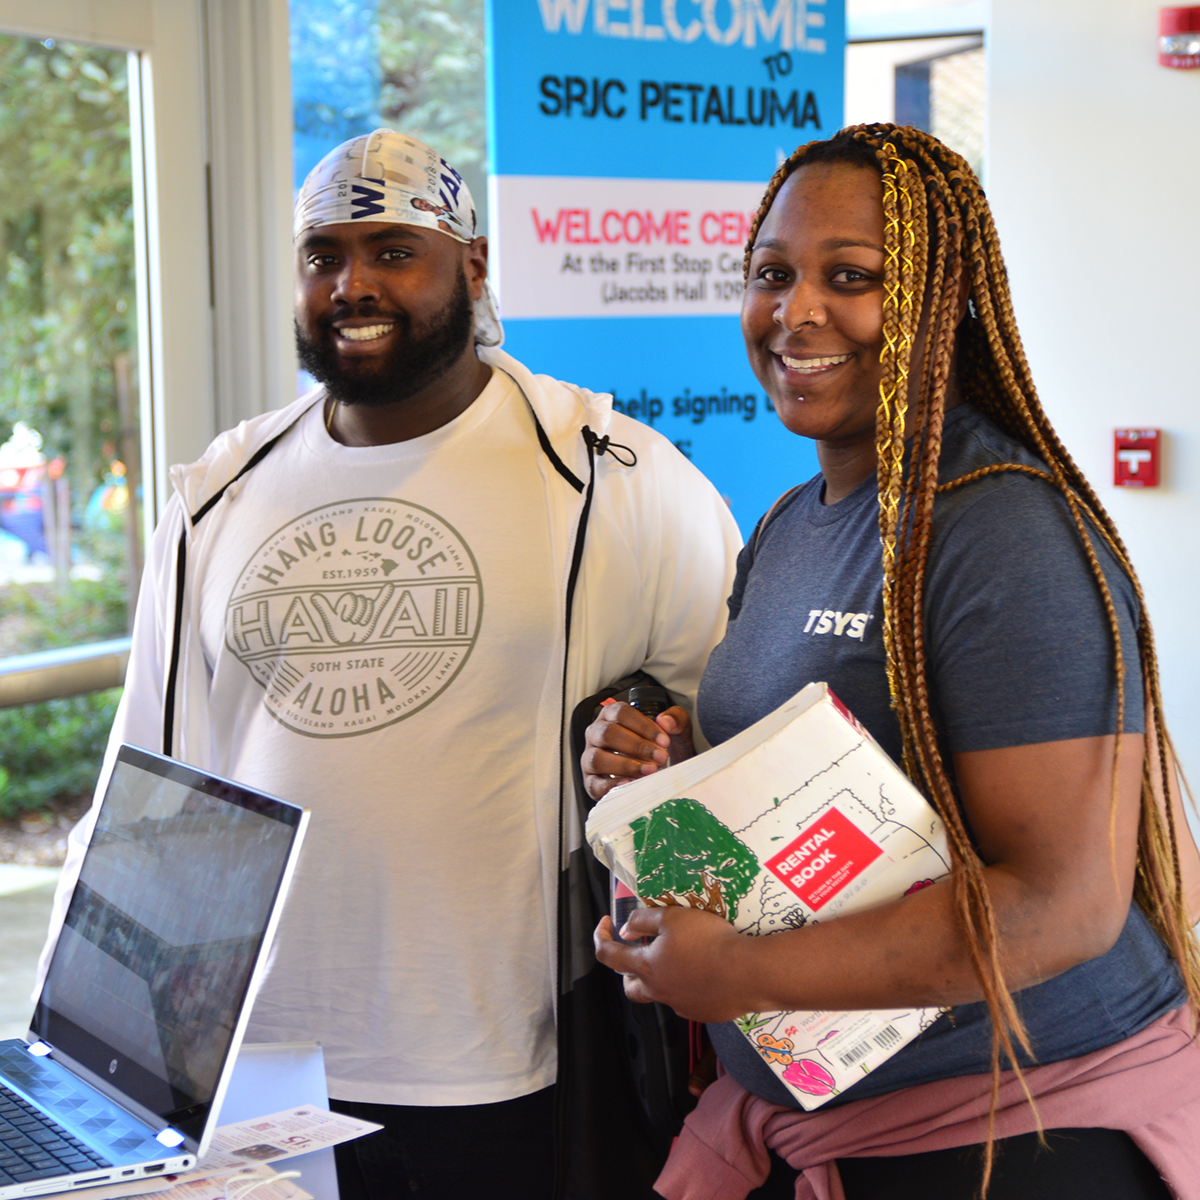 Two students in front of a sign that says welcome to srjc Petaluma